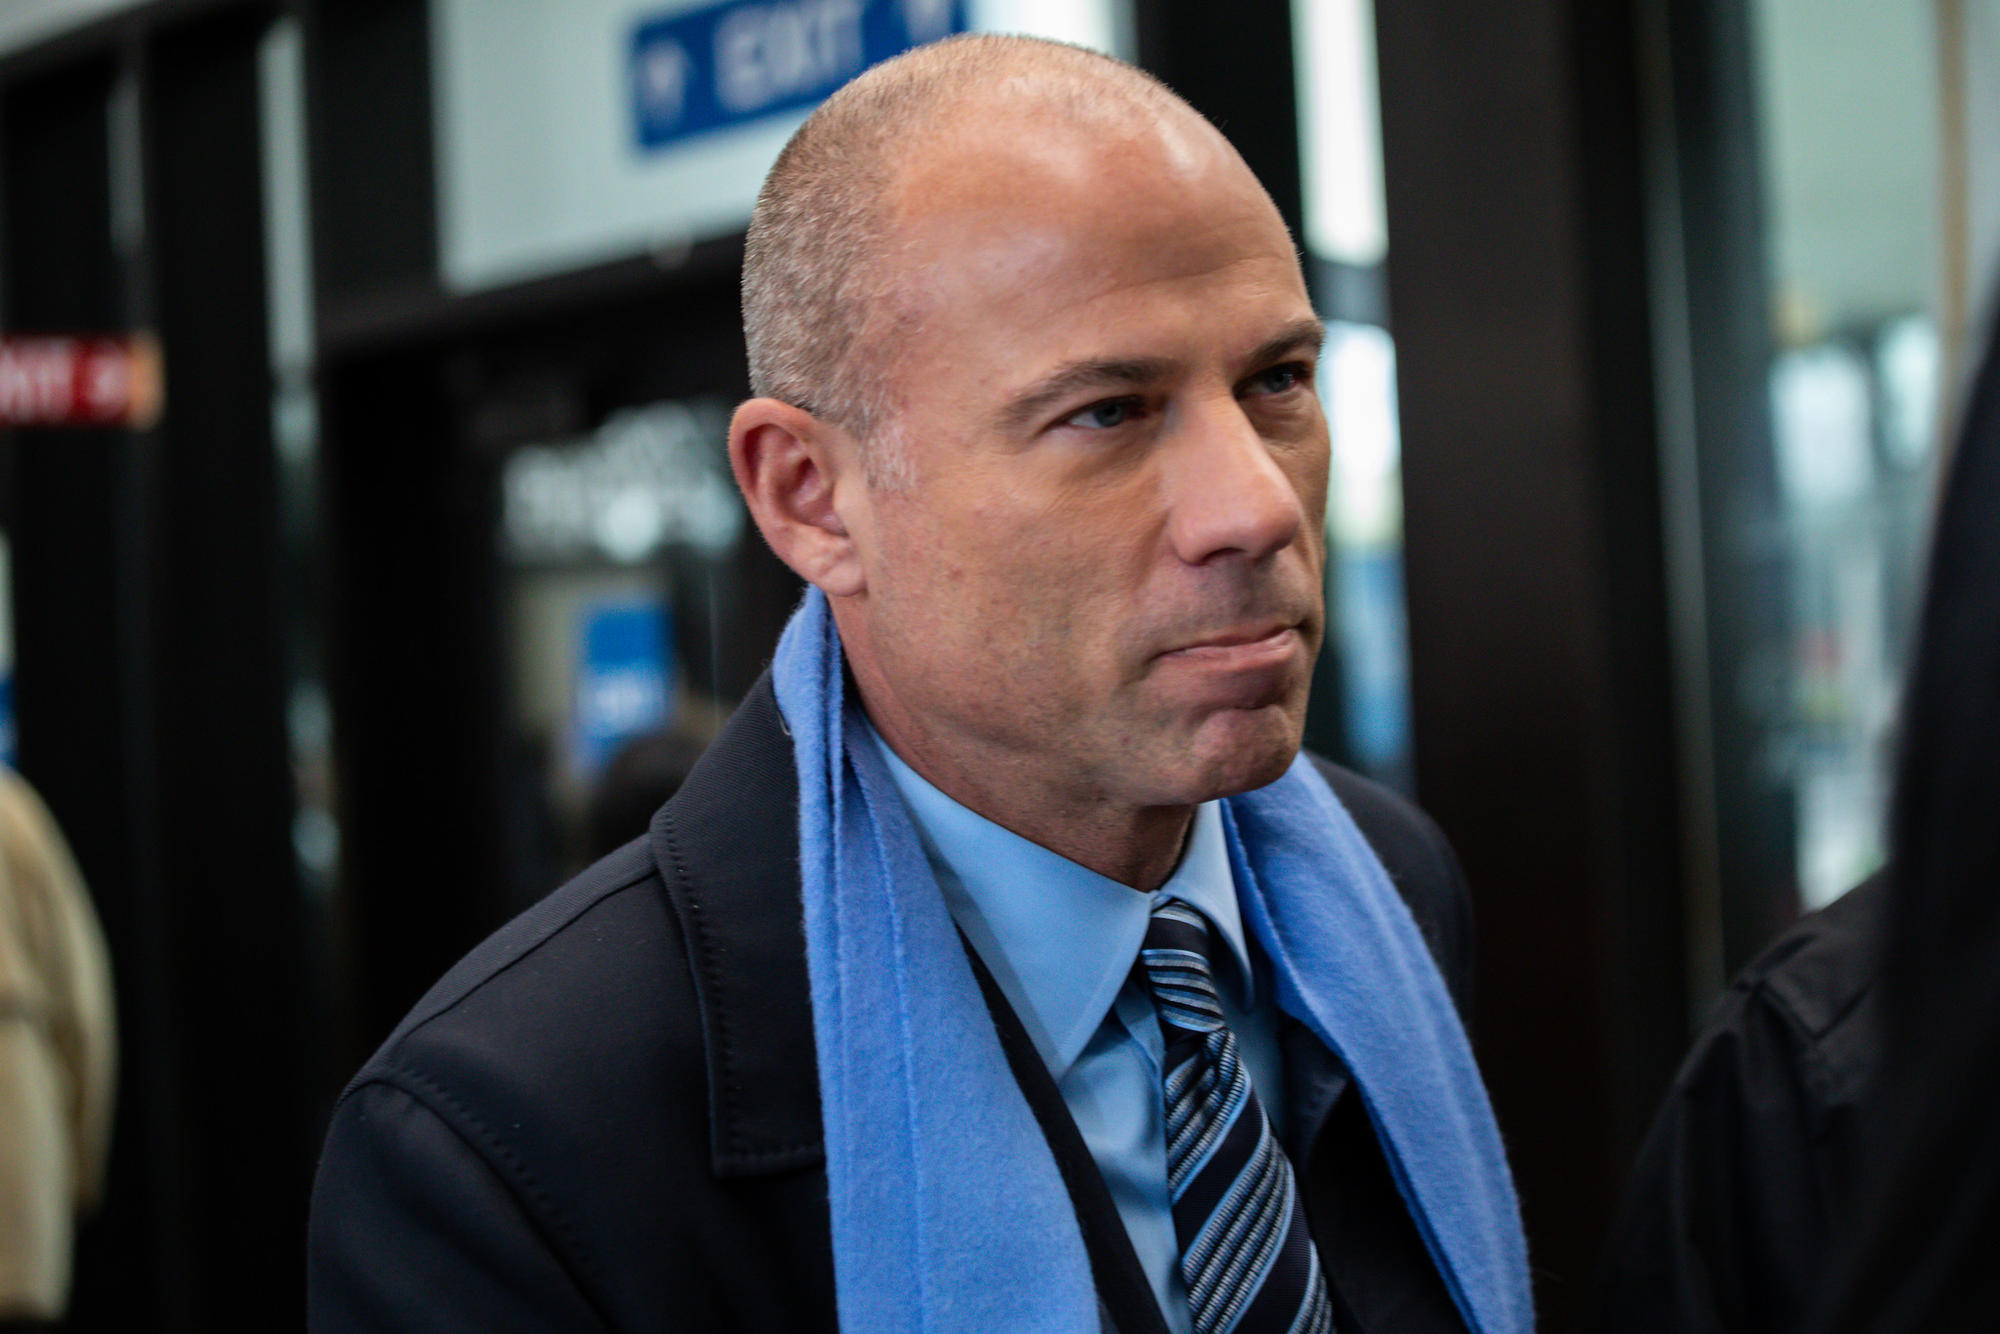 Michael Avenatti Arrested Accused Of Trying To Extort Millions From Nike